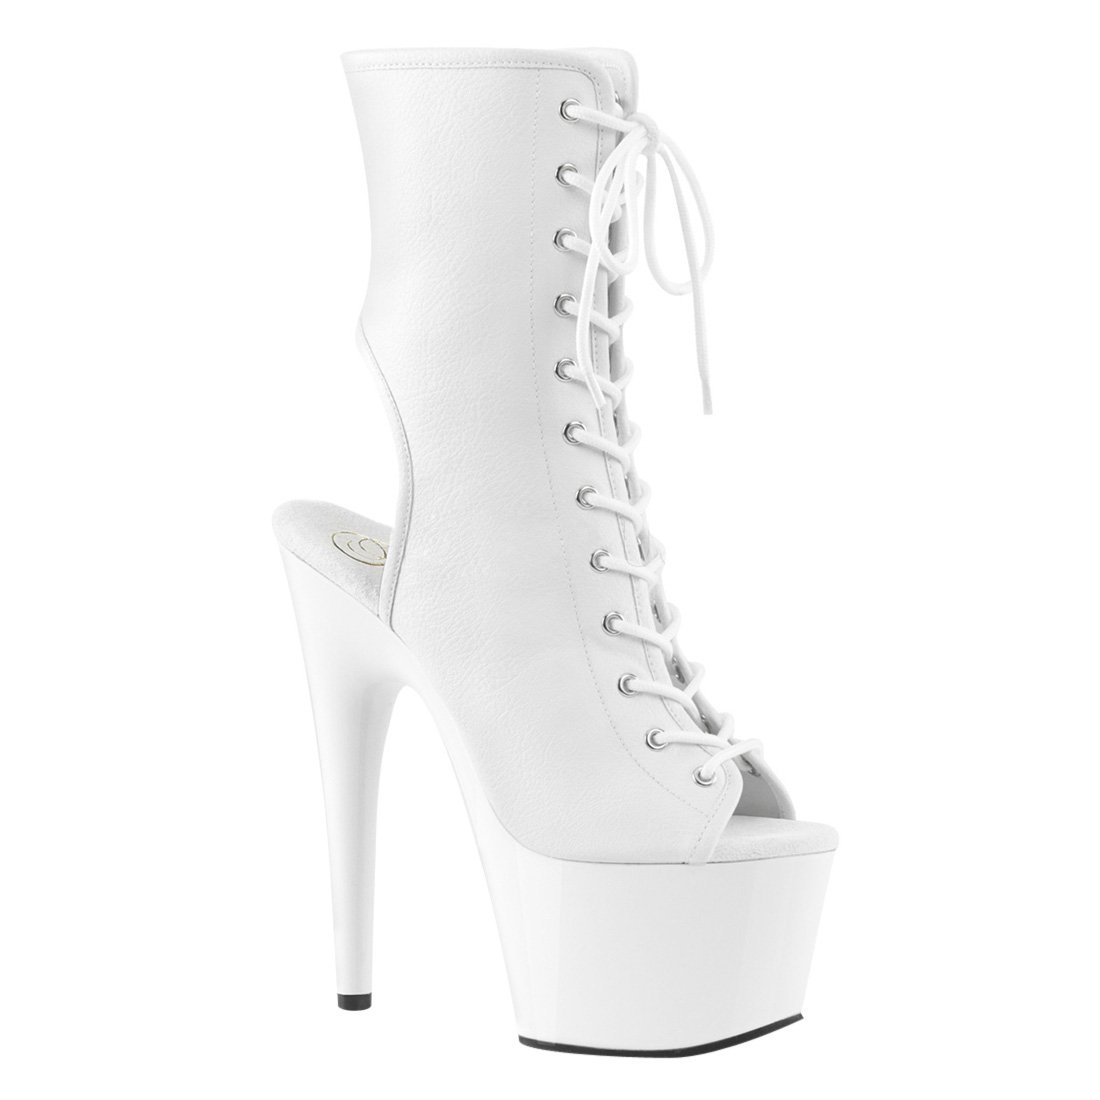 Pleaser Women's Adore-1016 Ankle Boot B01MXK64QU 9 B(M) US|White Faux Leather/White